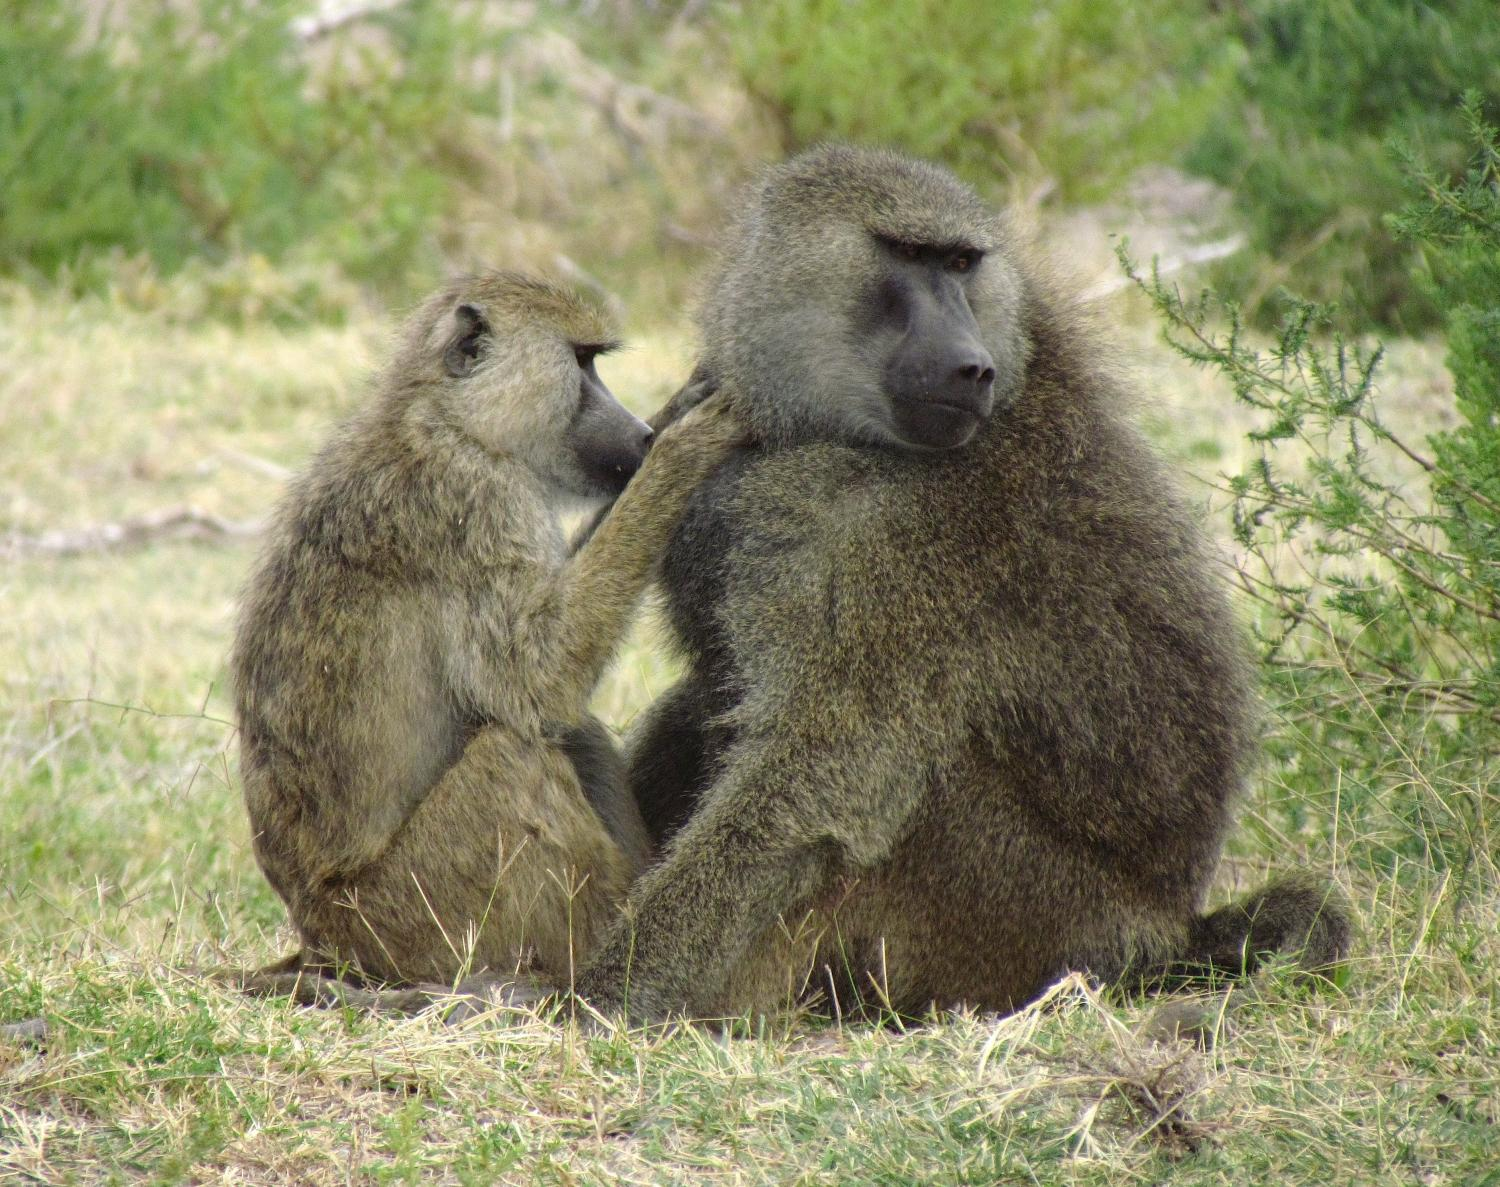 Baboons take turns grooming each other to make friends and cement